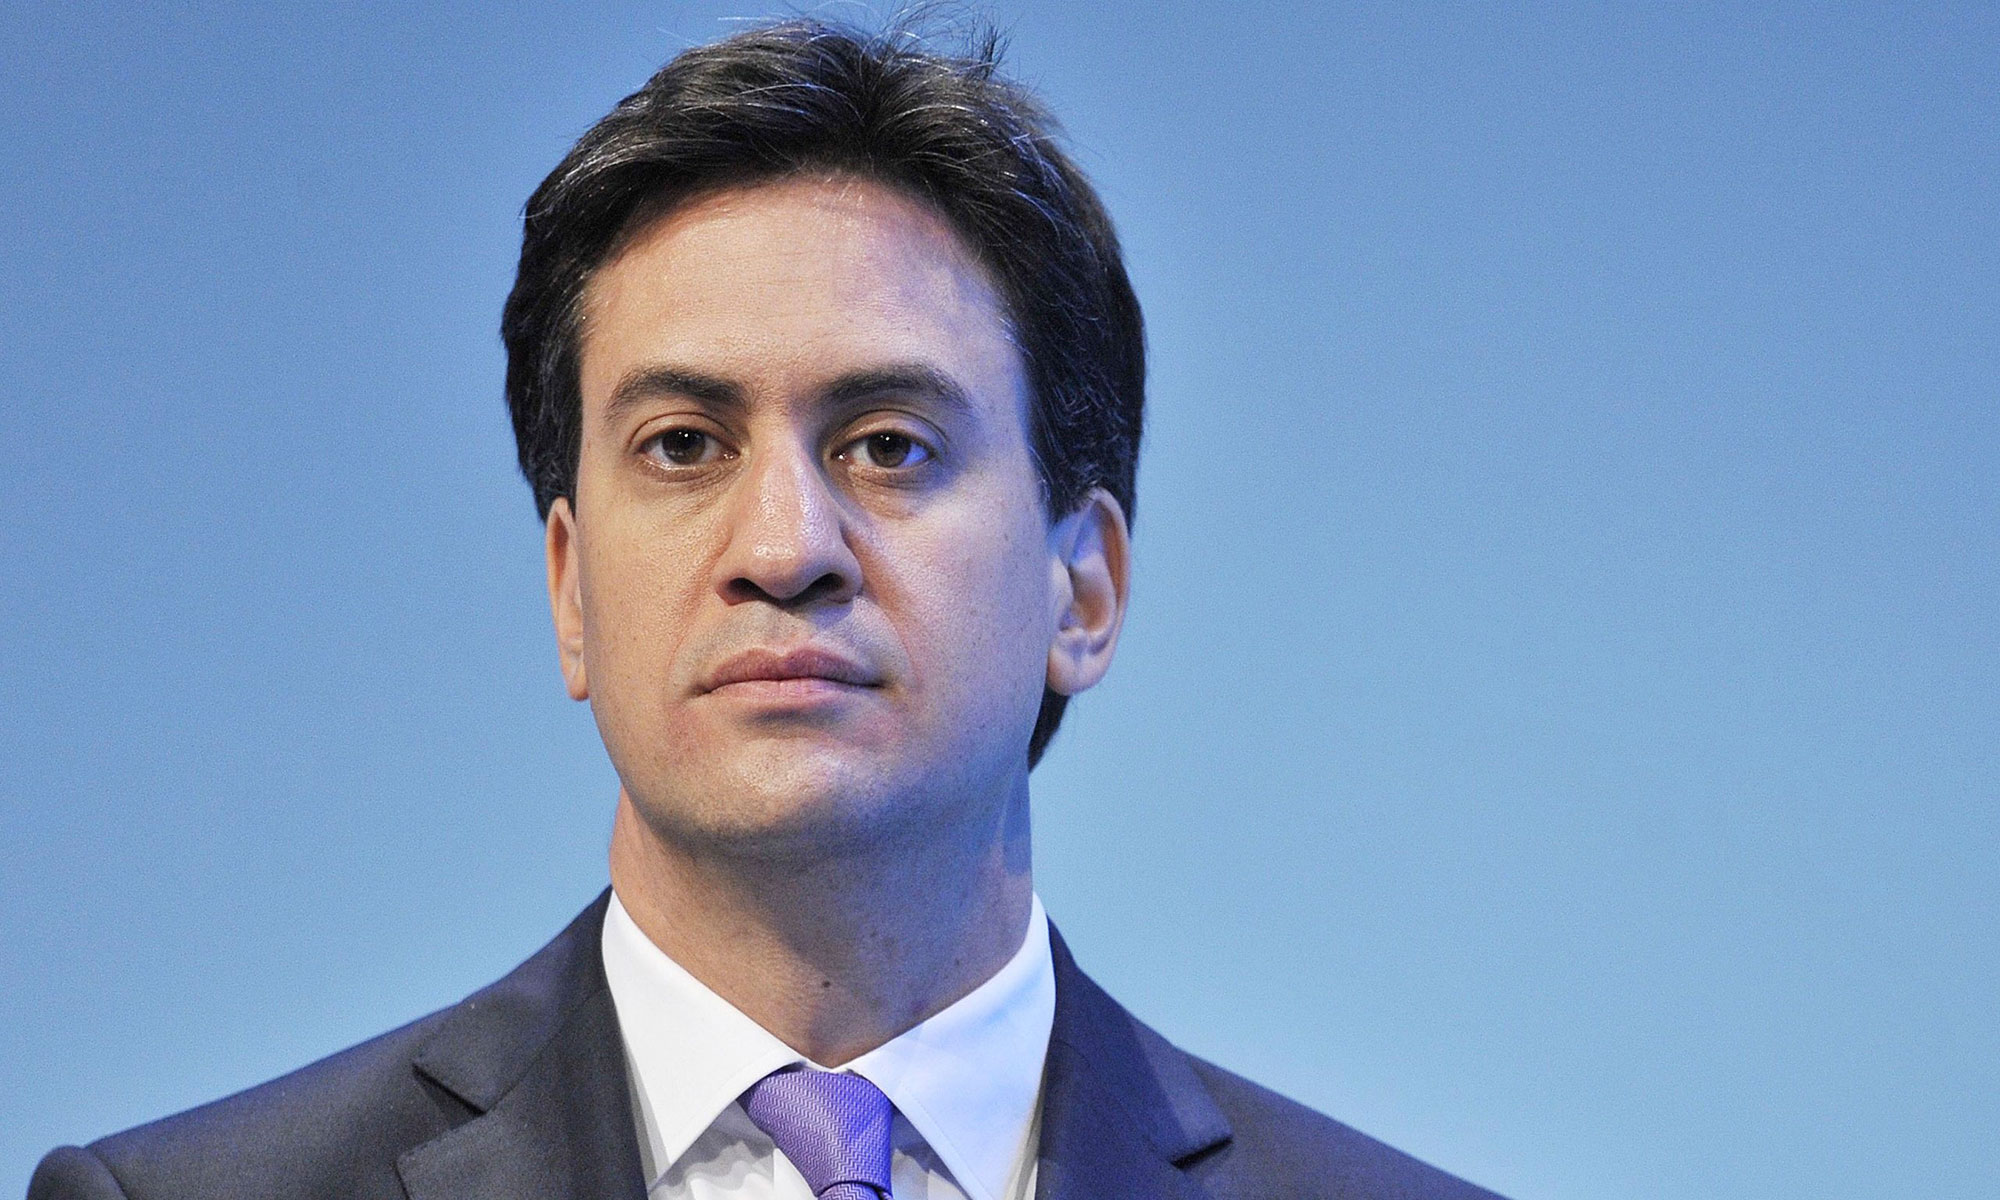 AN OPEN LETTER TO ED MILIBAND